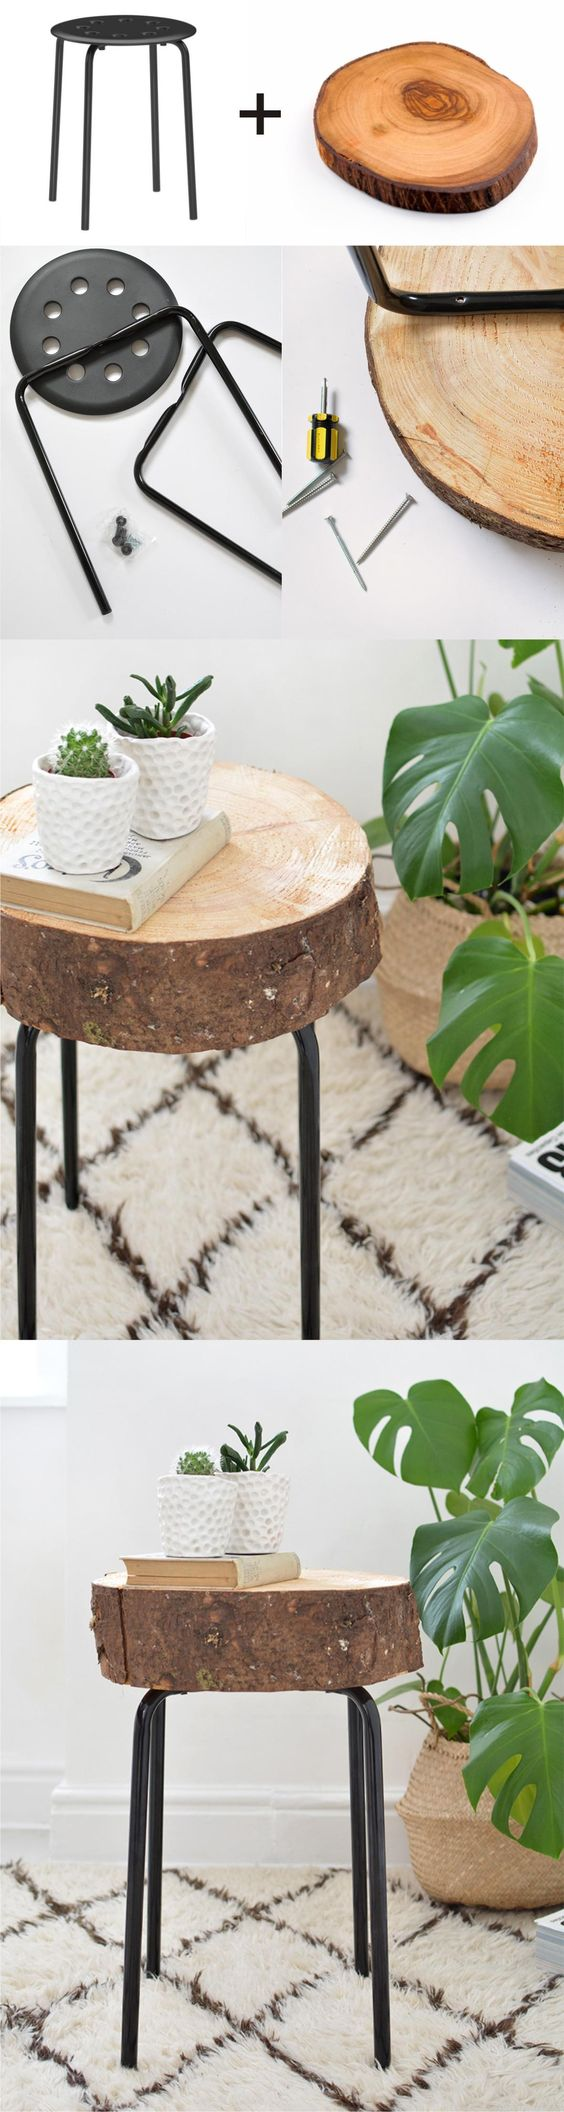 DIY Ikea Hack Wooden Stool.